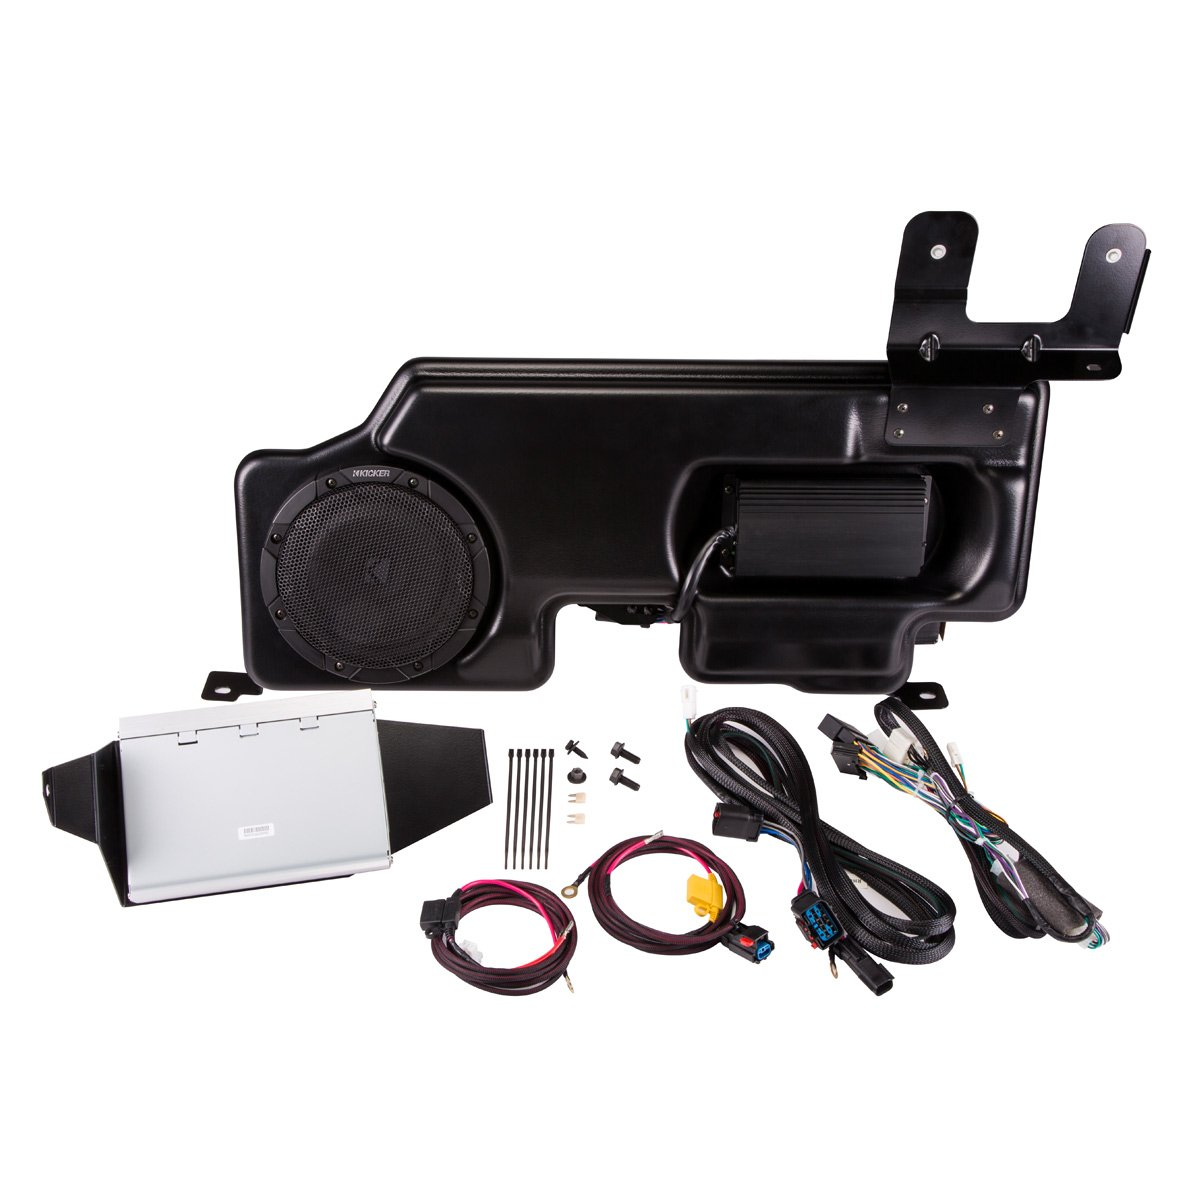 Kicker PF150SC15 PowerStage Amp & Powered Sub Upgrade for 2015 Ford F-150 Super Cab/Crew w/ MyFord Radio by Kicker